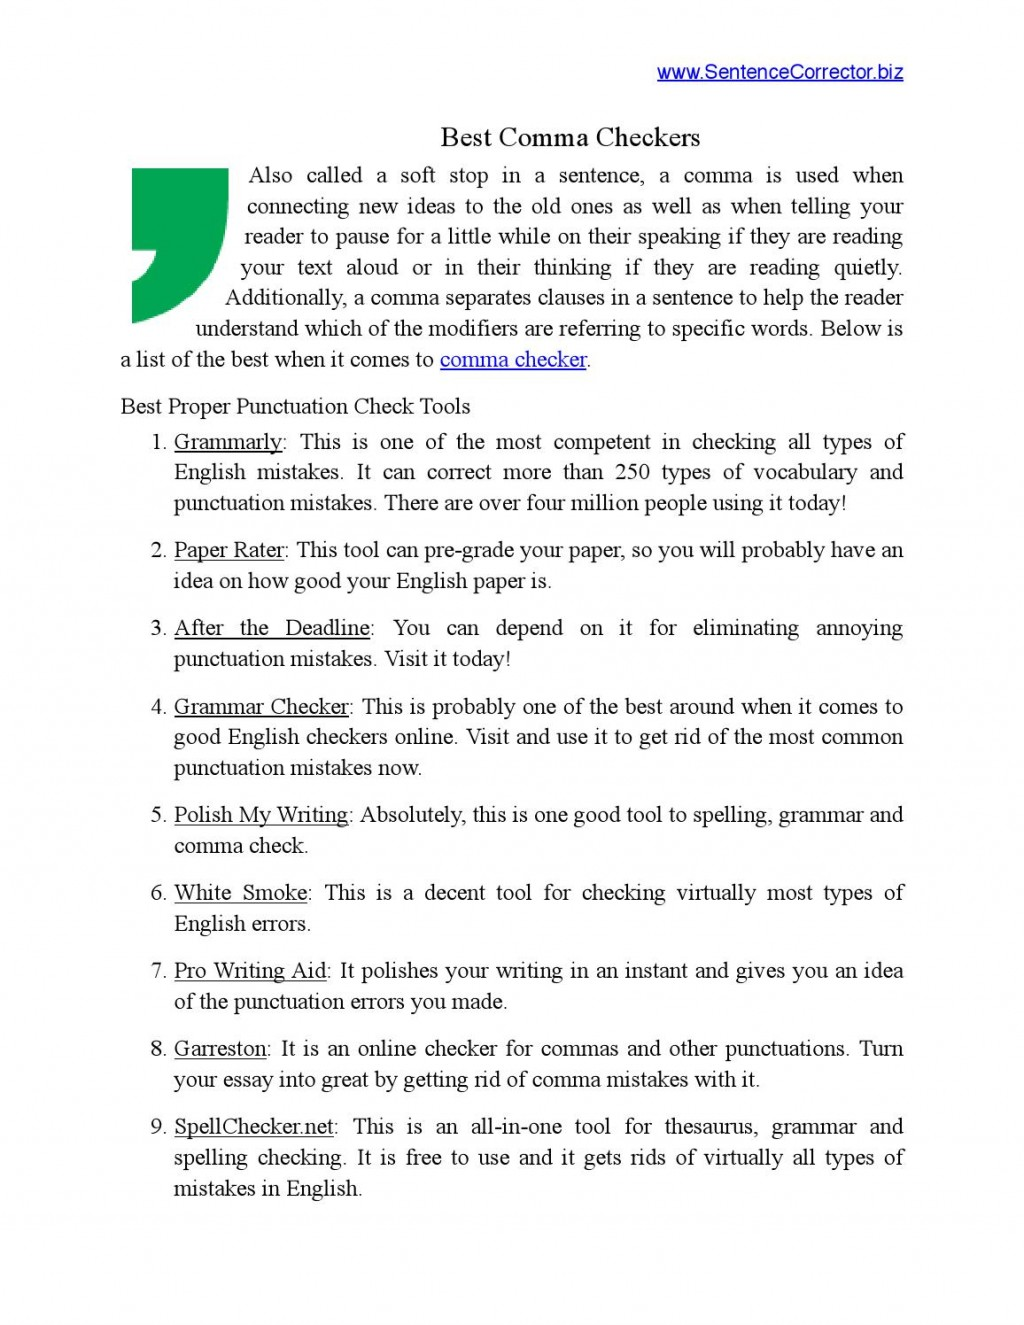 004 Page 1 Free Essay Checker Awesome Ielts Punctuation For Plagiarism Large